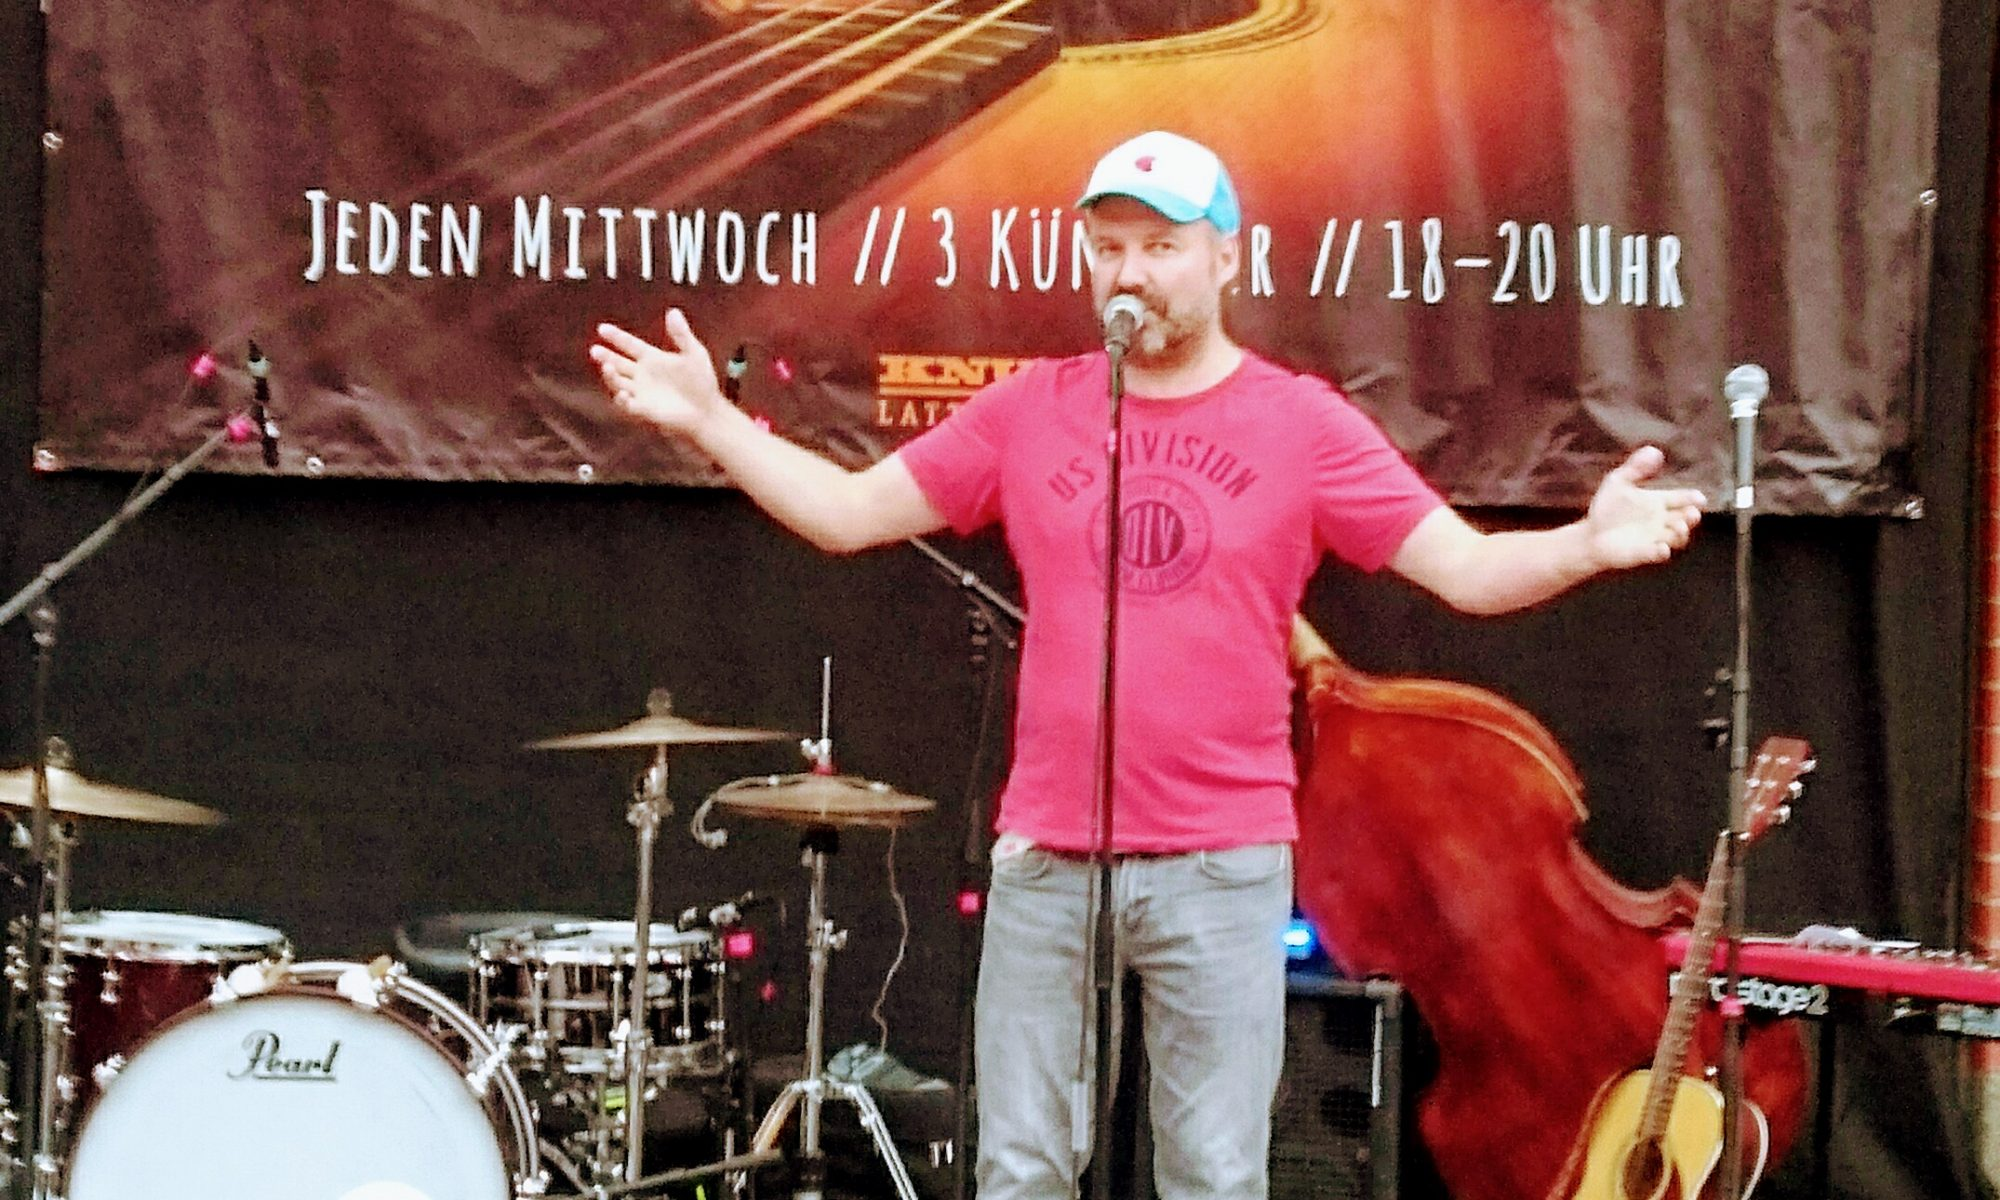 Knust Acoustics, Knust, Club, Open Air, Concert, Siebeth, host, Moderator, Pop in Hamburg